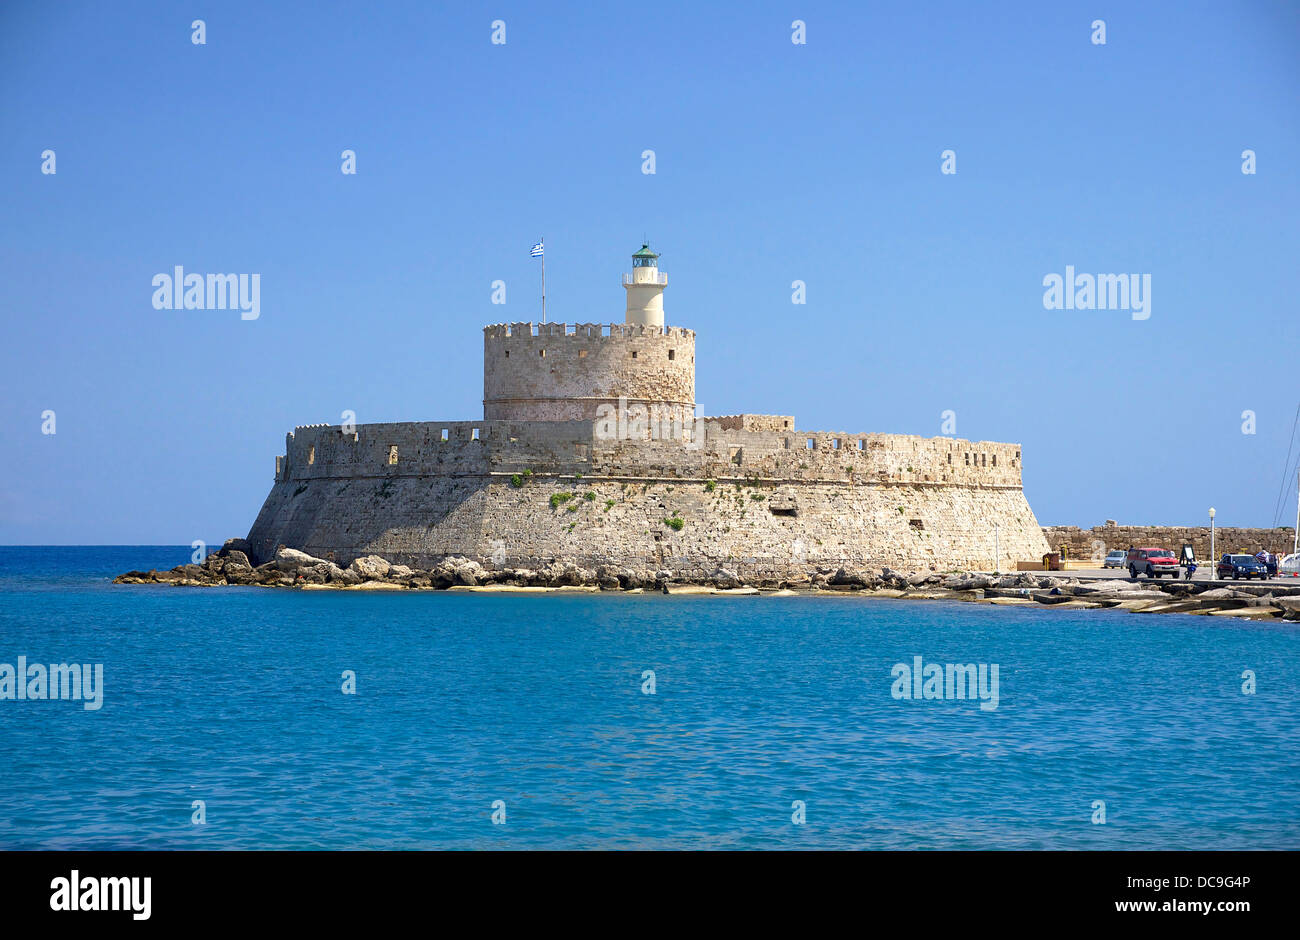 fort Saint Nicolas (and lighthouse), 14th century, entrance of the old harbour of Rhodes, Greece. - Stock Image